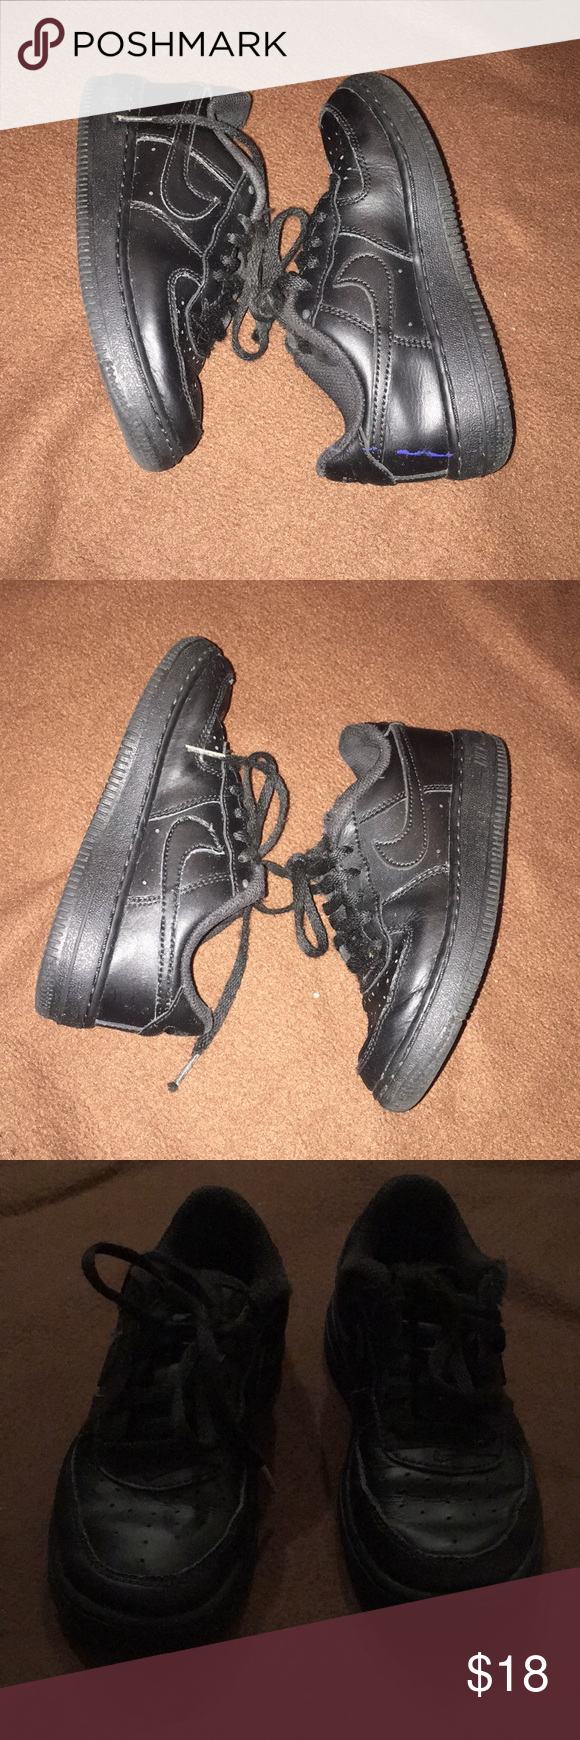 Black Low Top Air Force Ones Sz 11 Boy or Girl Used, but